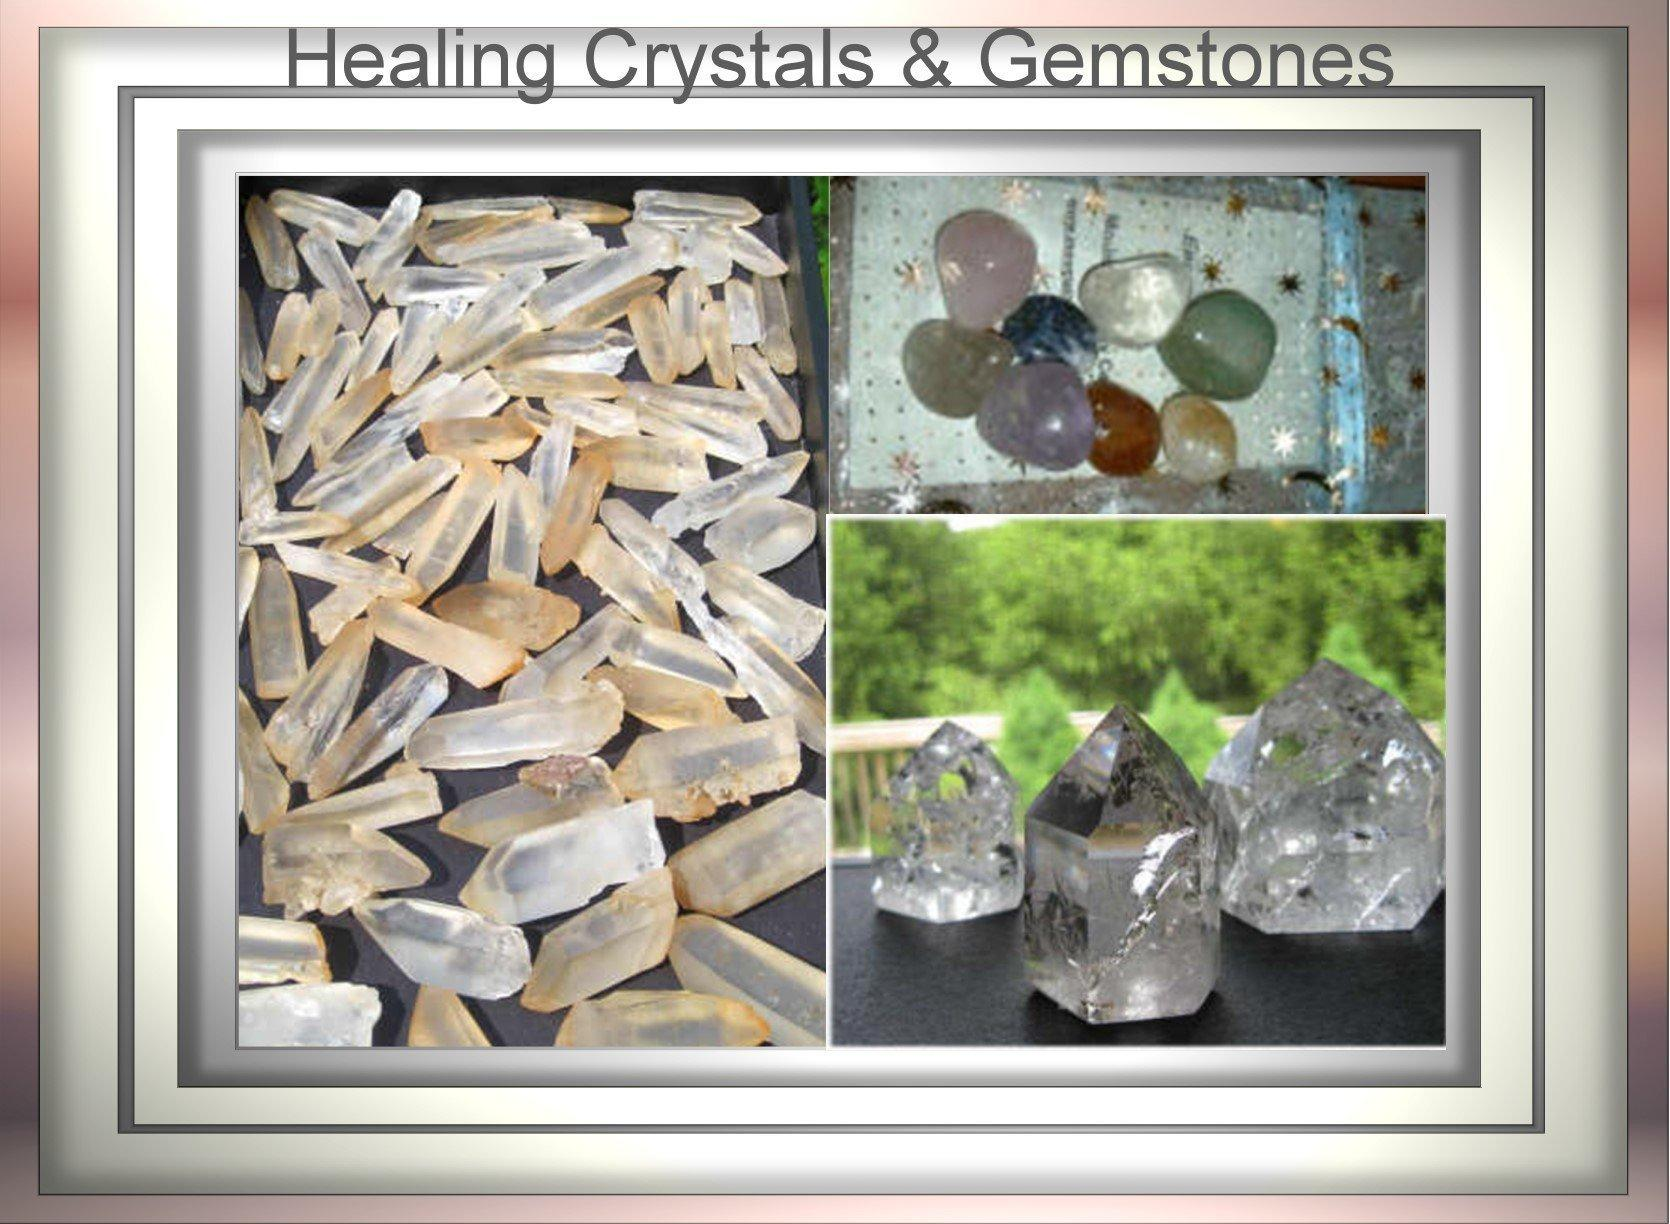 Healing Crystals at Mountain Valley Center.com